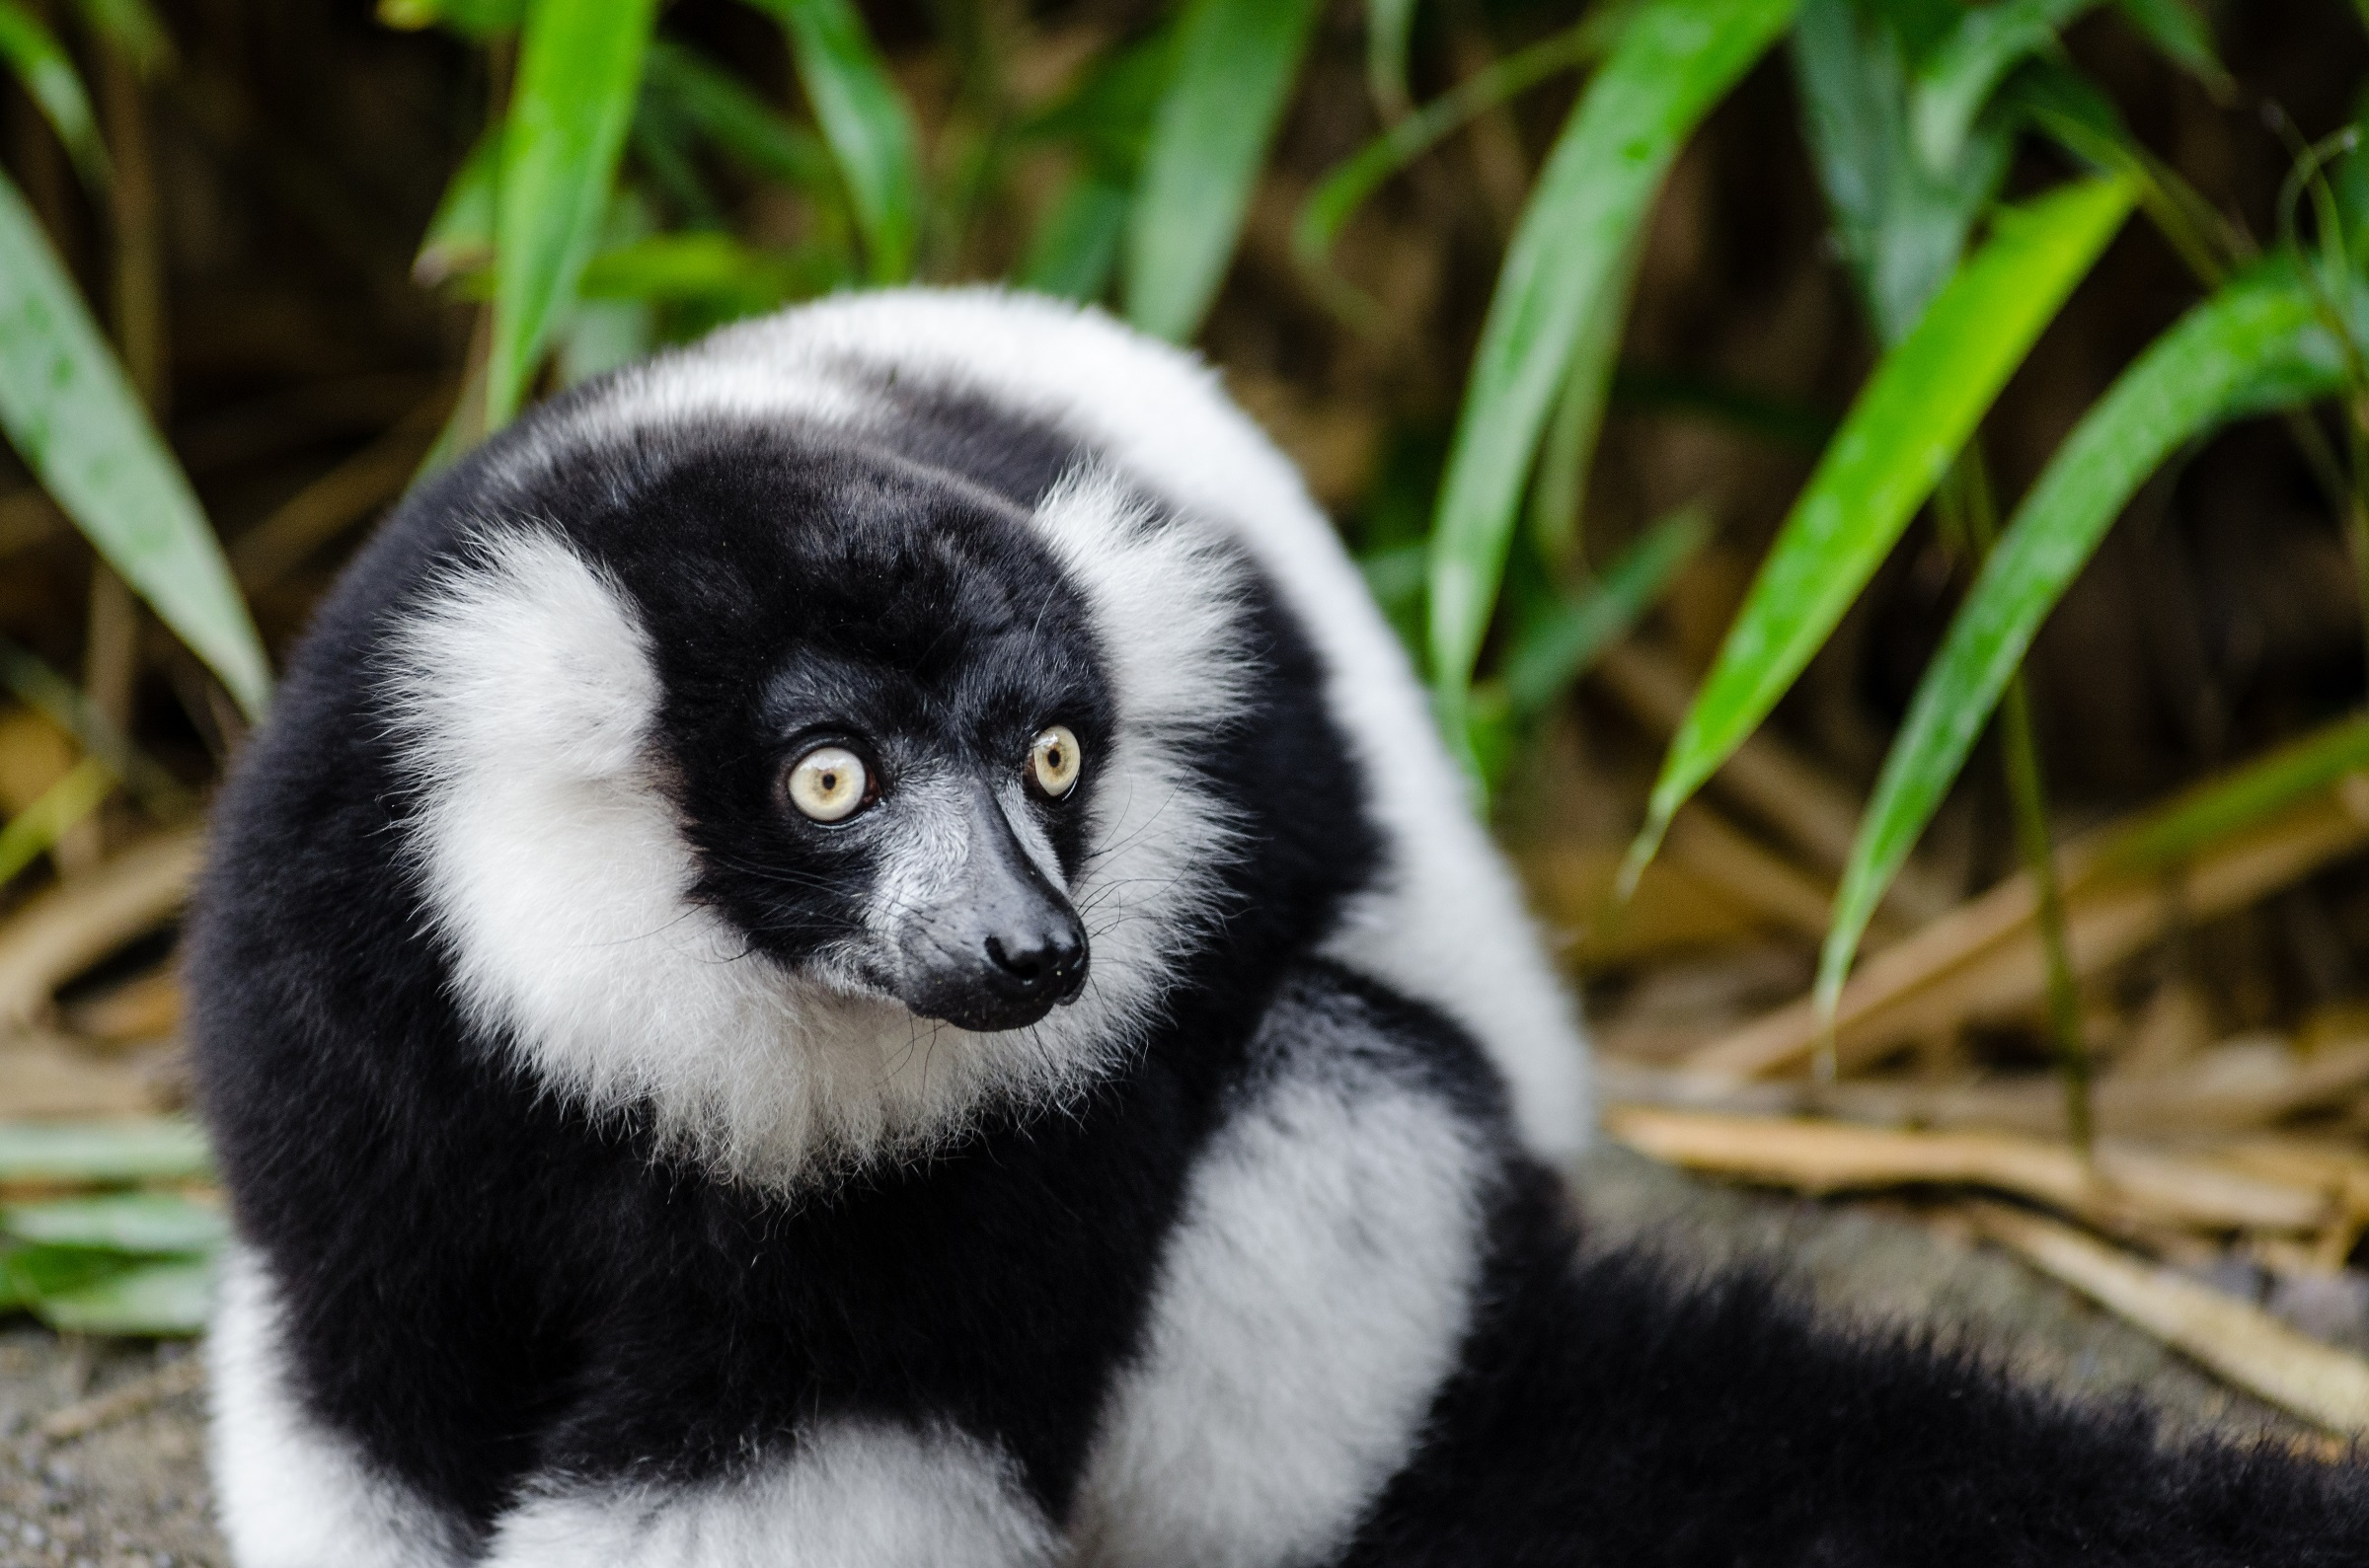 Black and white ruffed lemur photo